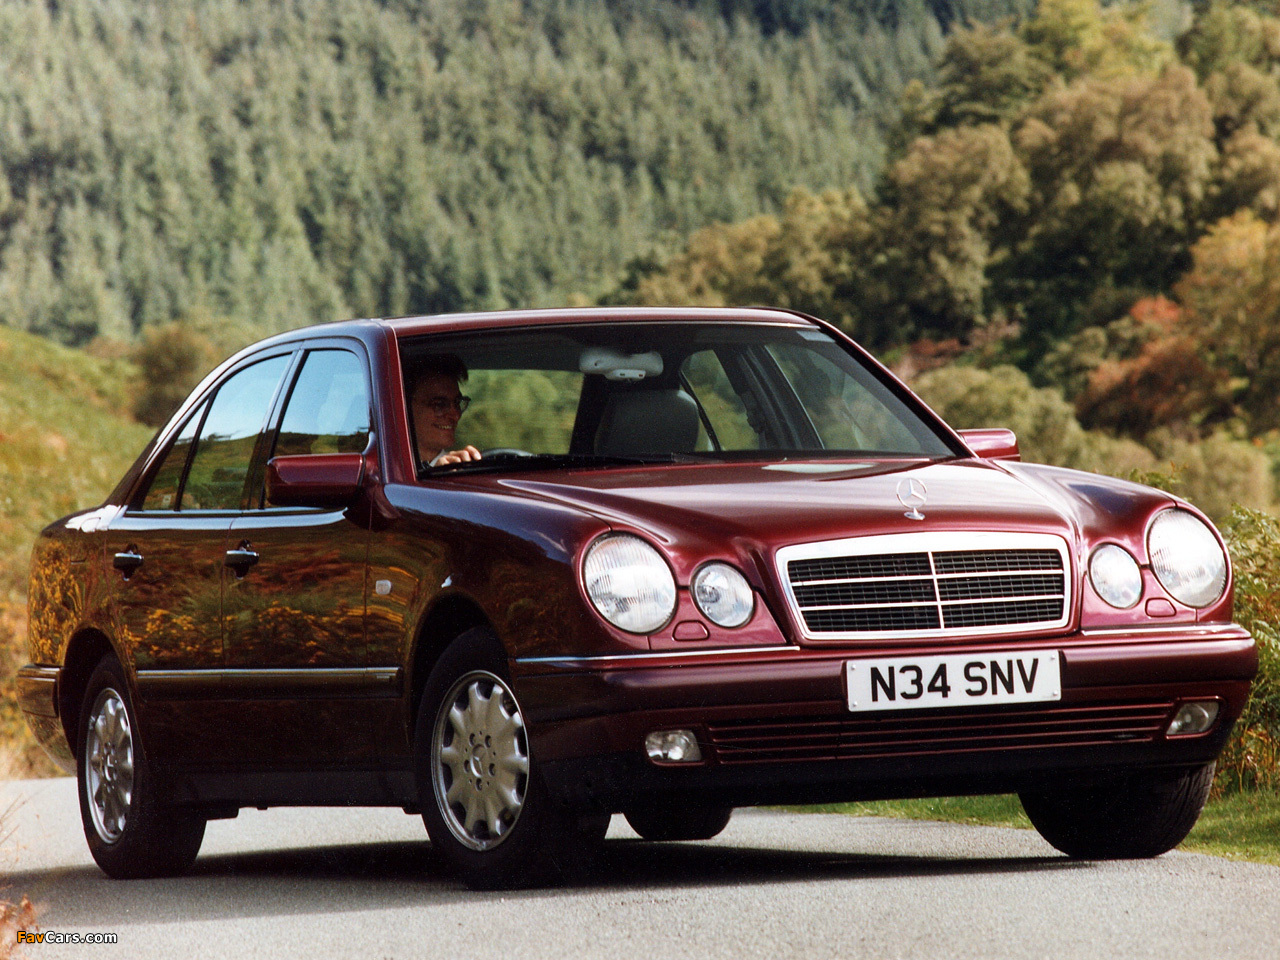 Mercedes benz e 200 uk spec w210 1995 99 wallpapers for 99 mercedes benz e320